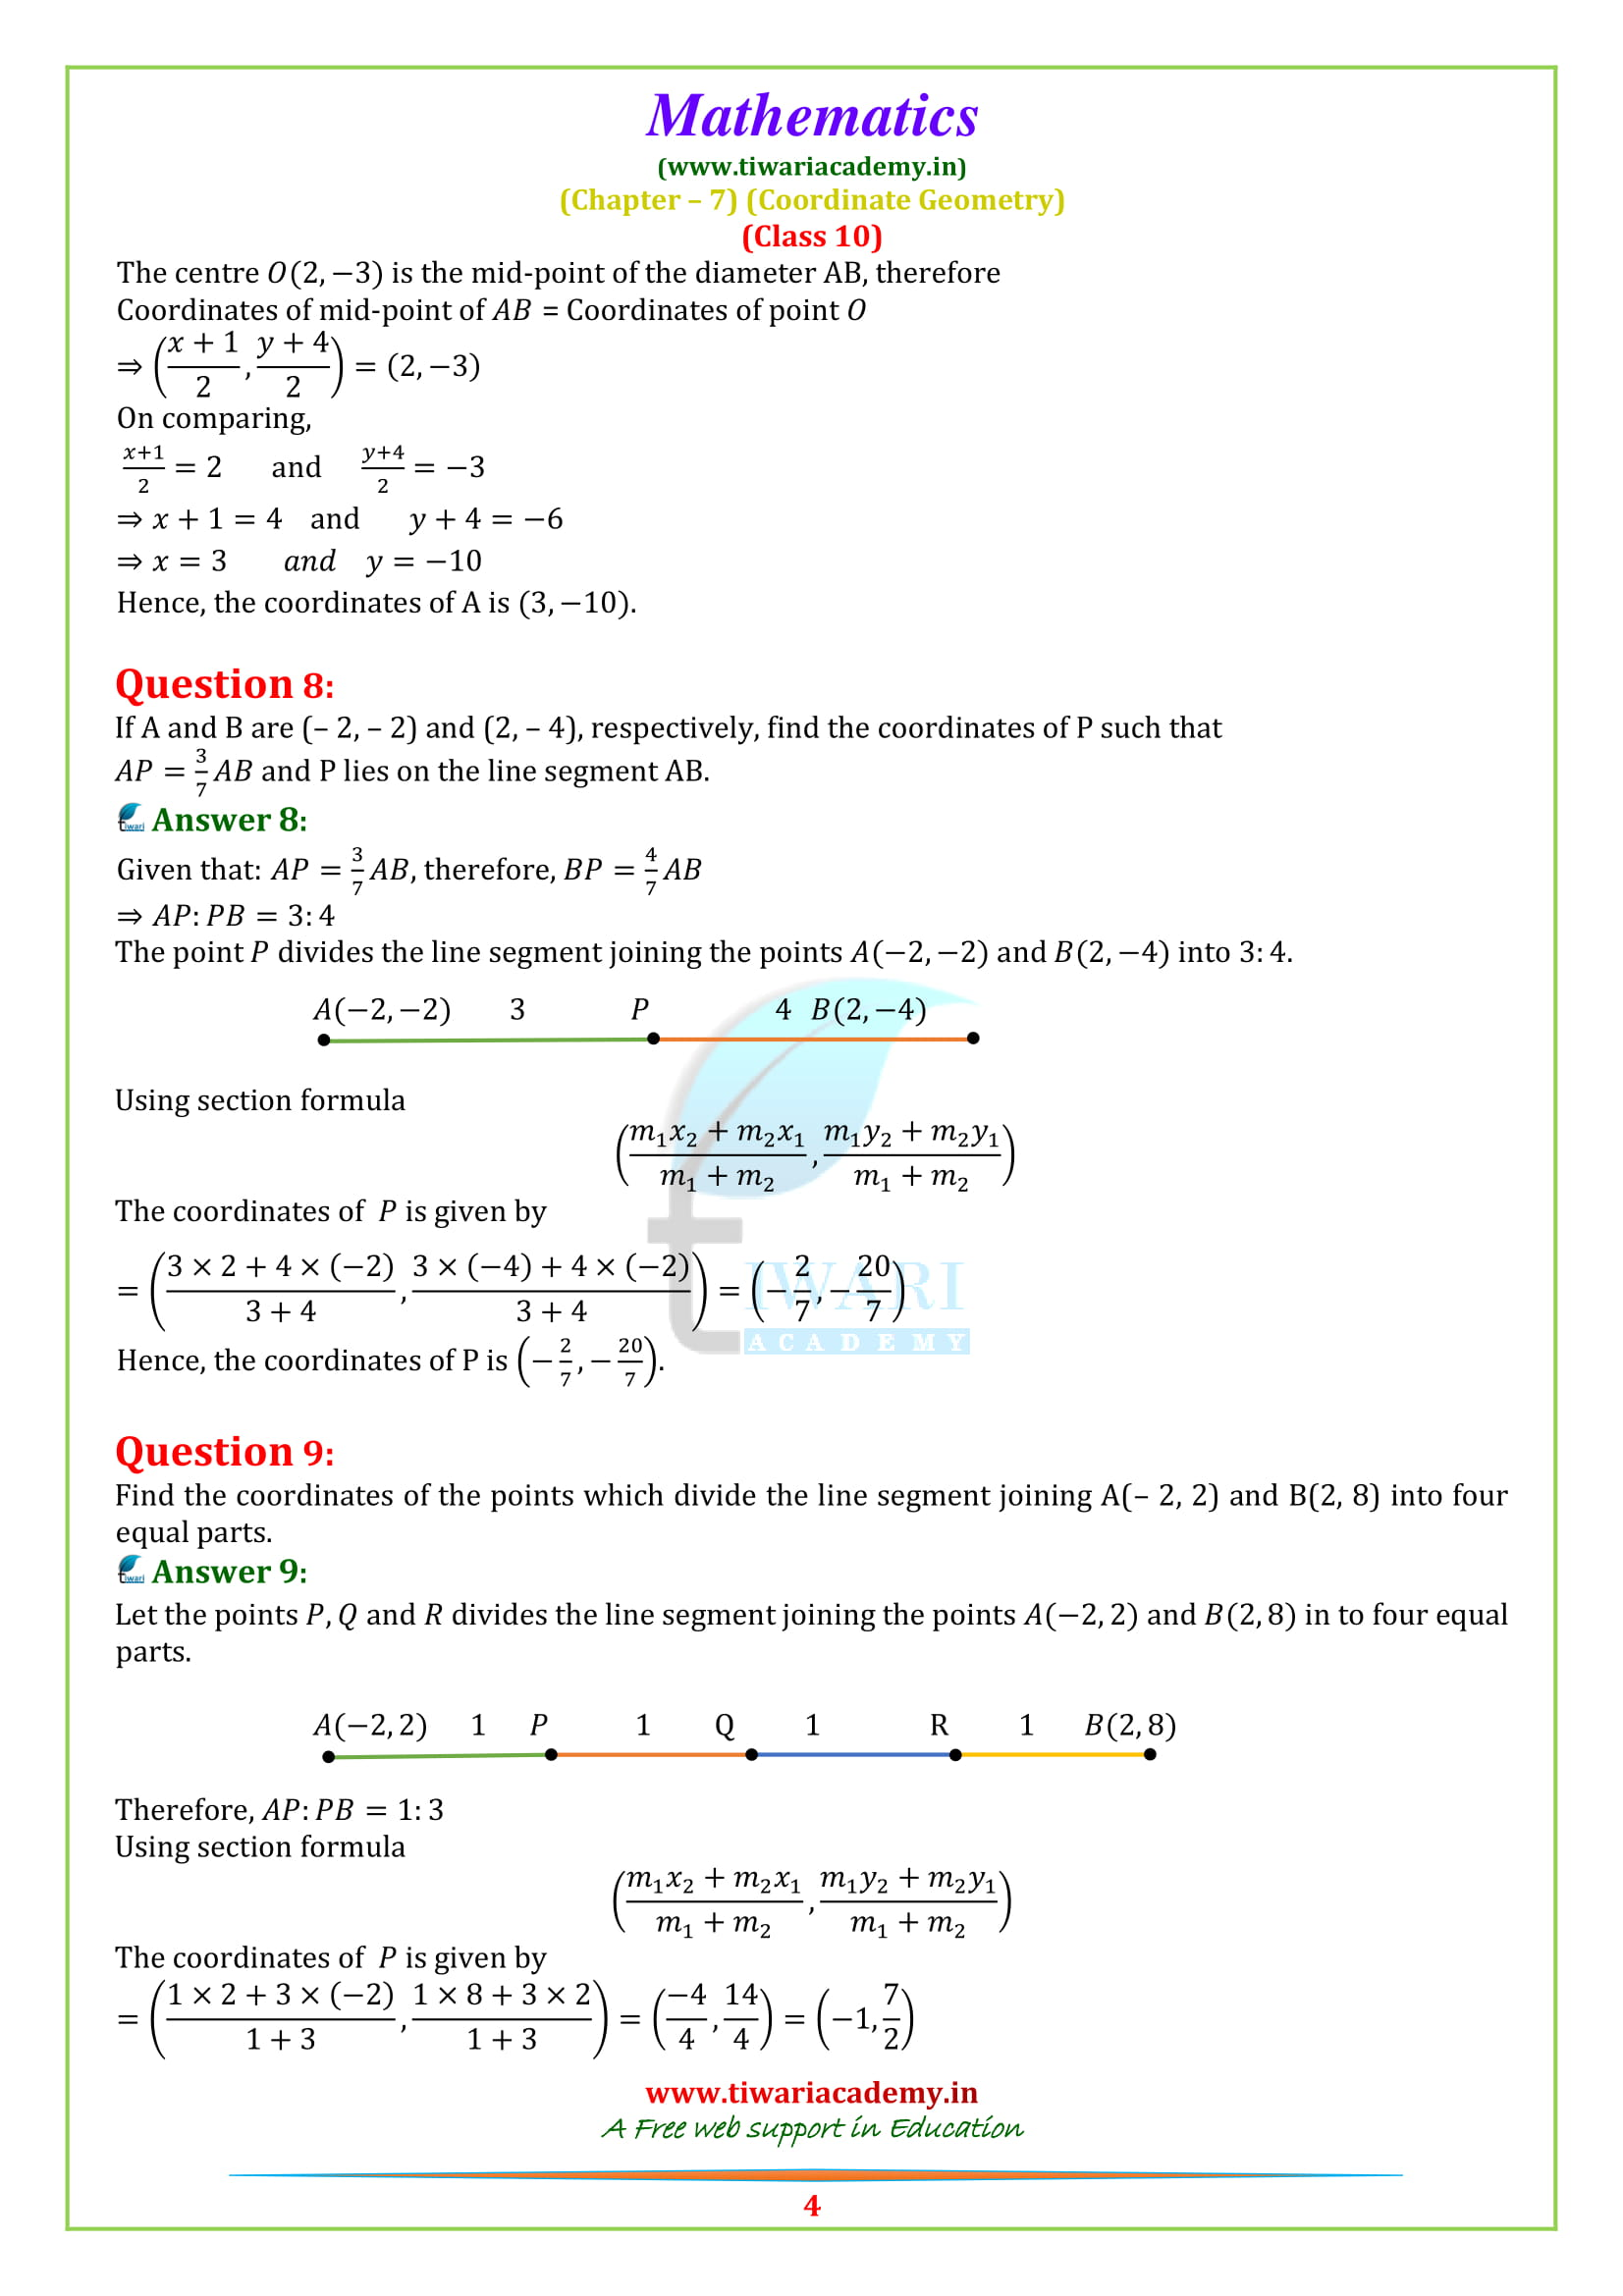 NCERT Solutions for class 10 Maths Exercise 7.2 question 1, 2, 3, 4, 5, 6, 7, 8, 9, 10